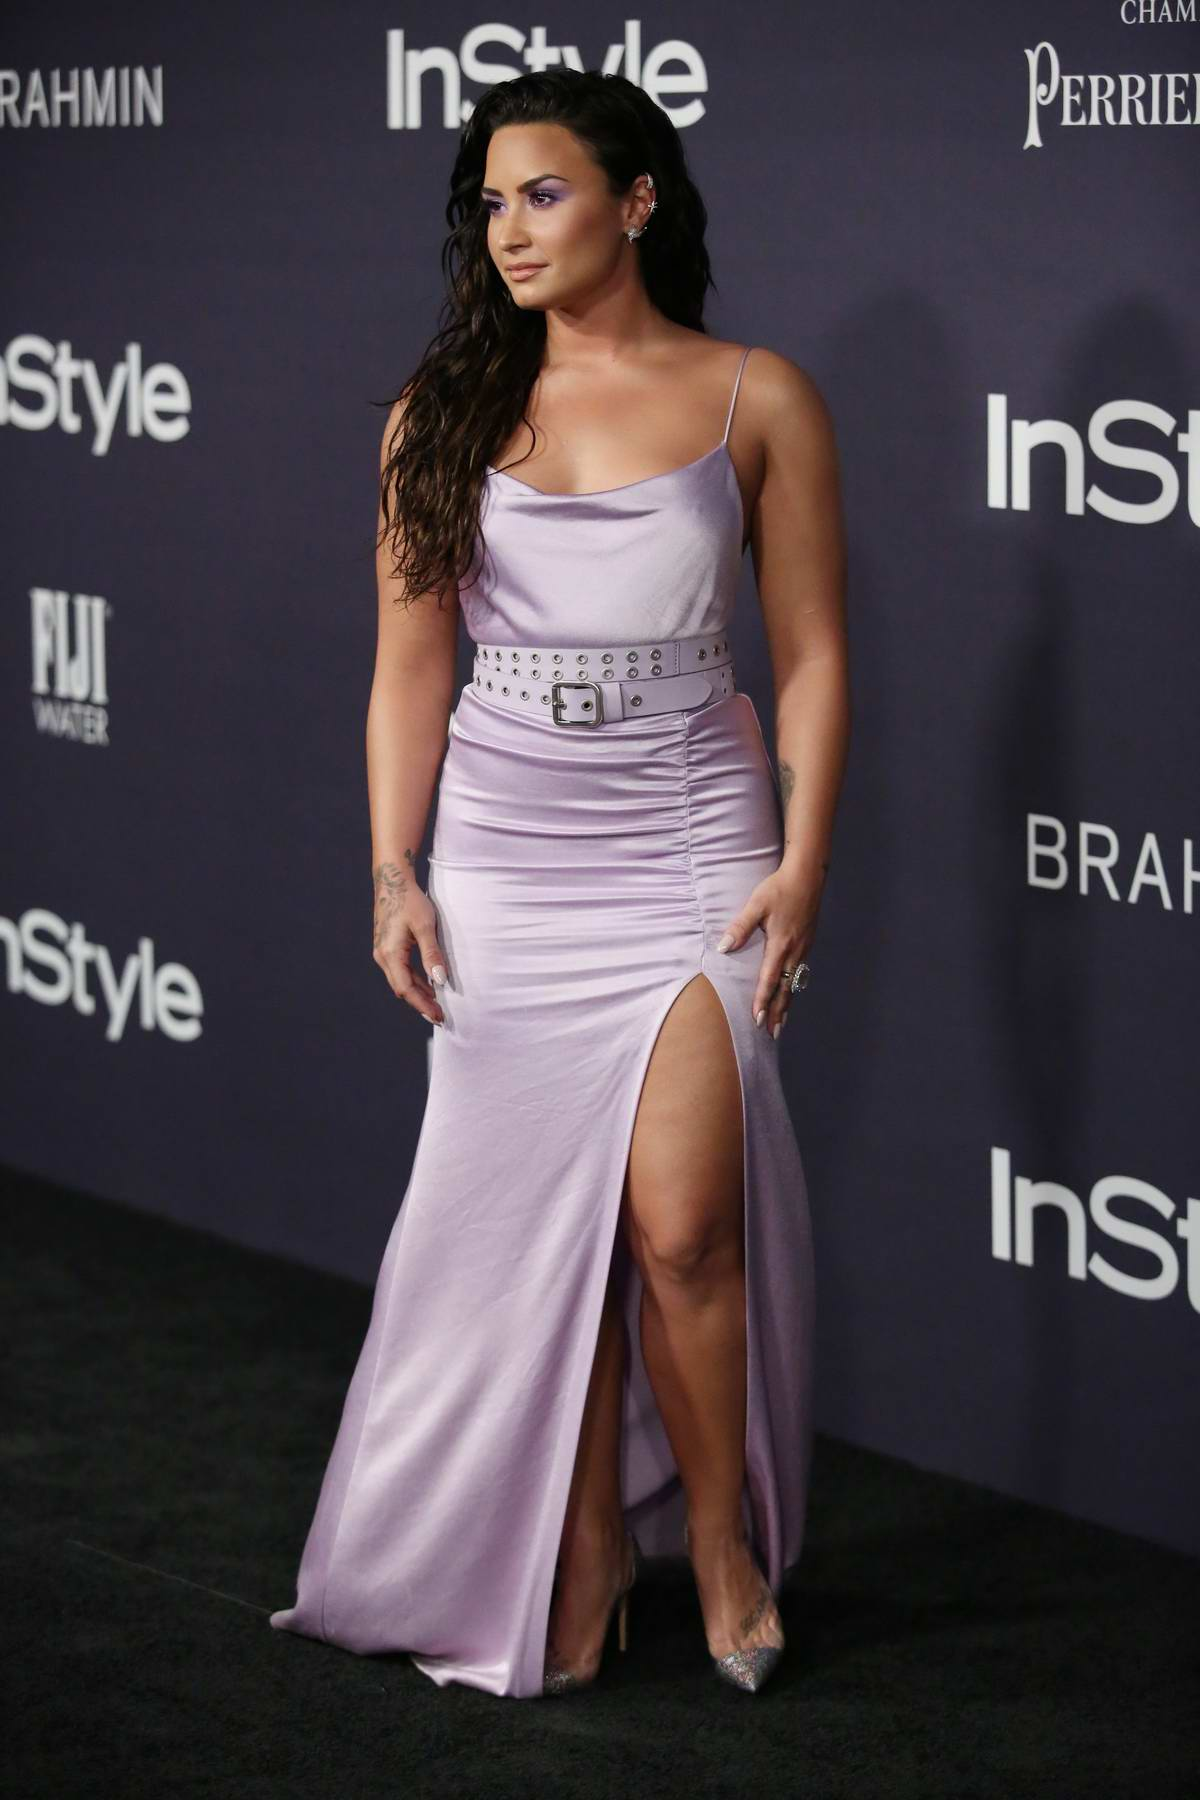 Demi Lovato at the 2017 InStyle Awards held at Getty Center in Los Angeles